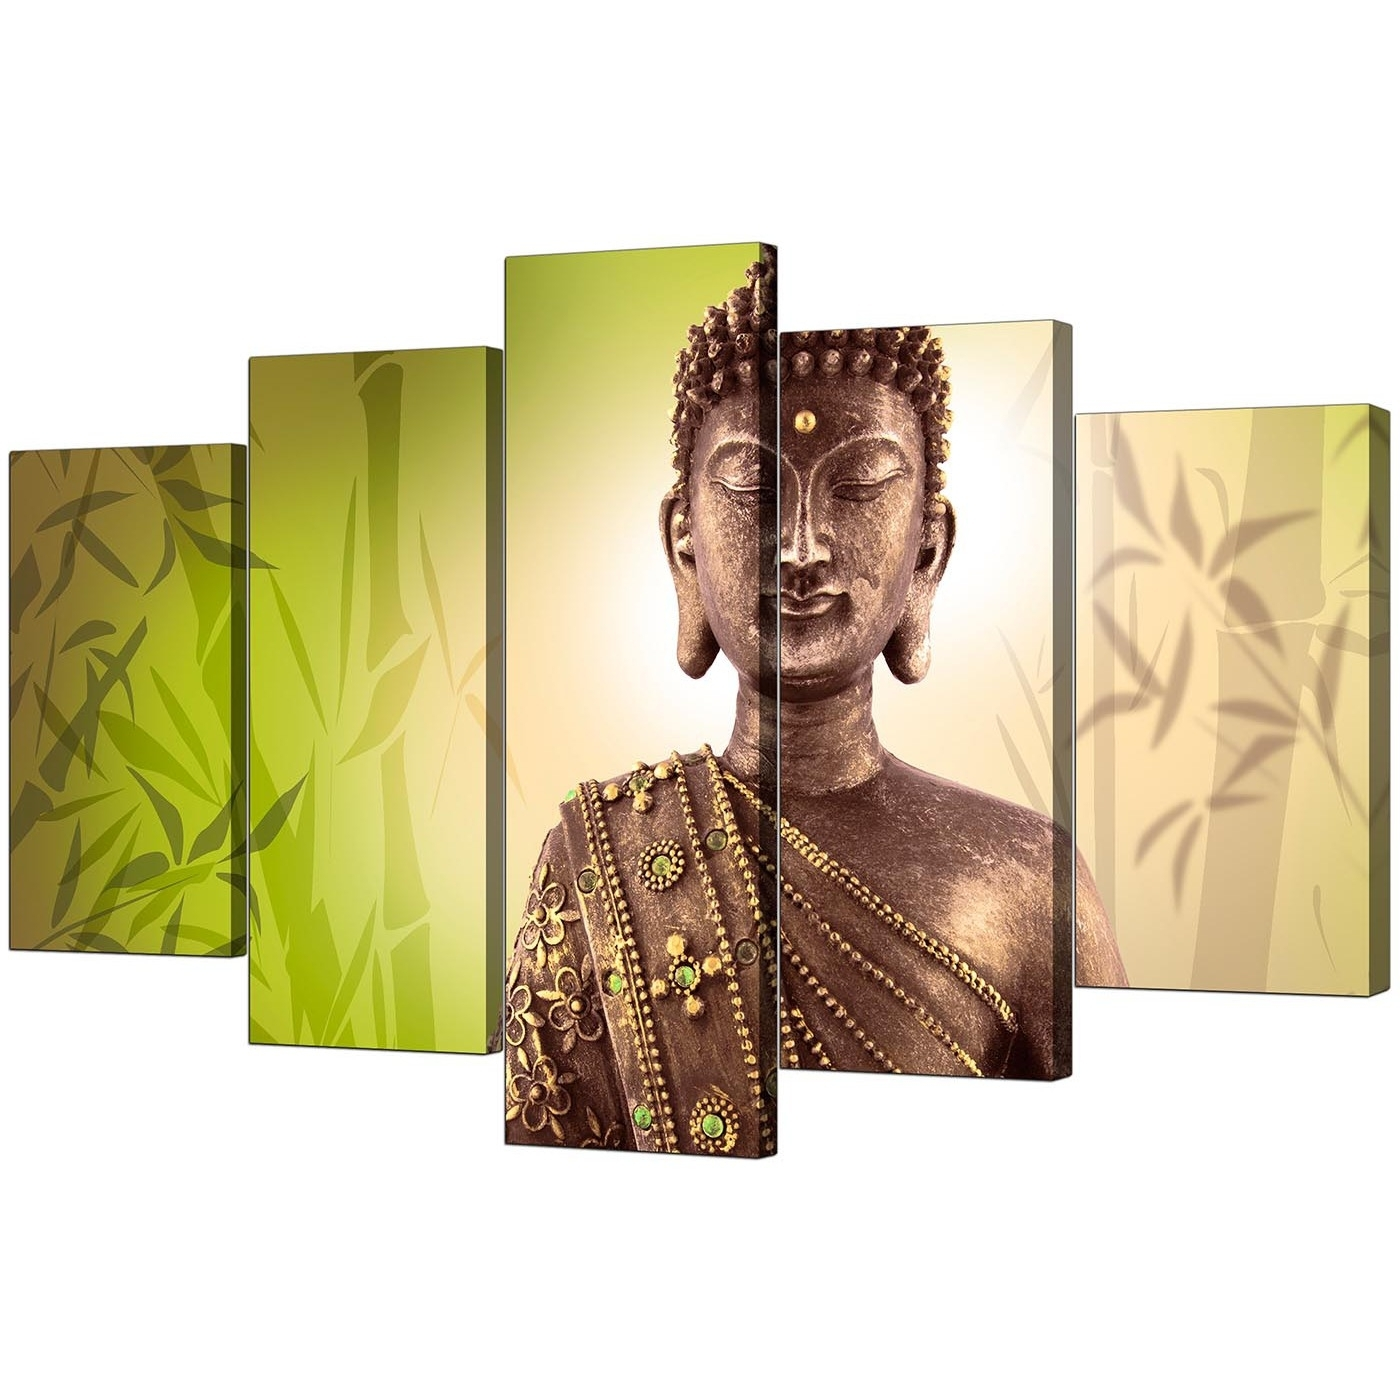 Comfortable Buddha Wall Art Decor Contemporary - The Wall Art ...